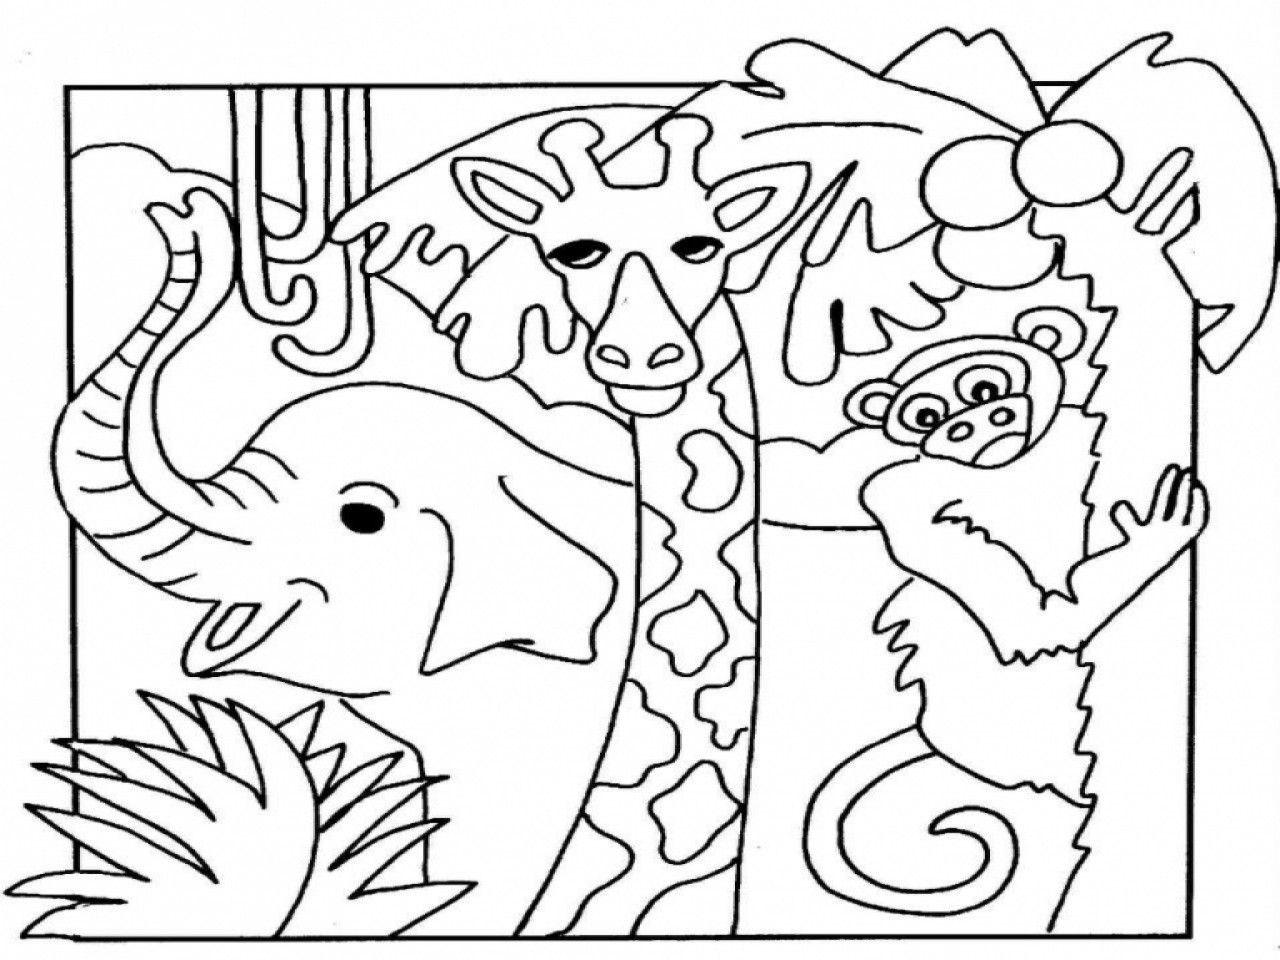 Zoo Animals Coloring Pages  Zoo Animal Coloring Pages coloringsuite